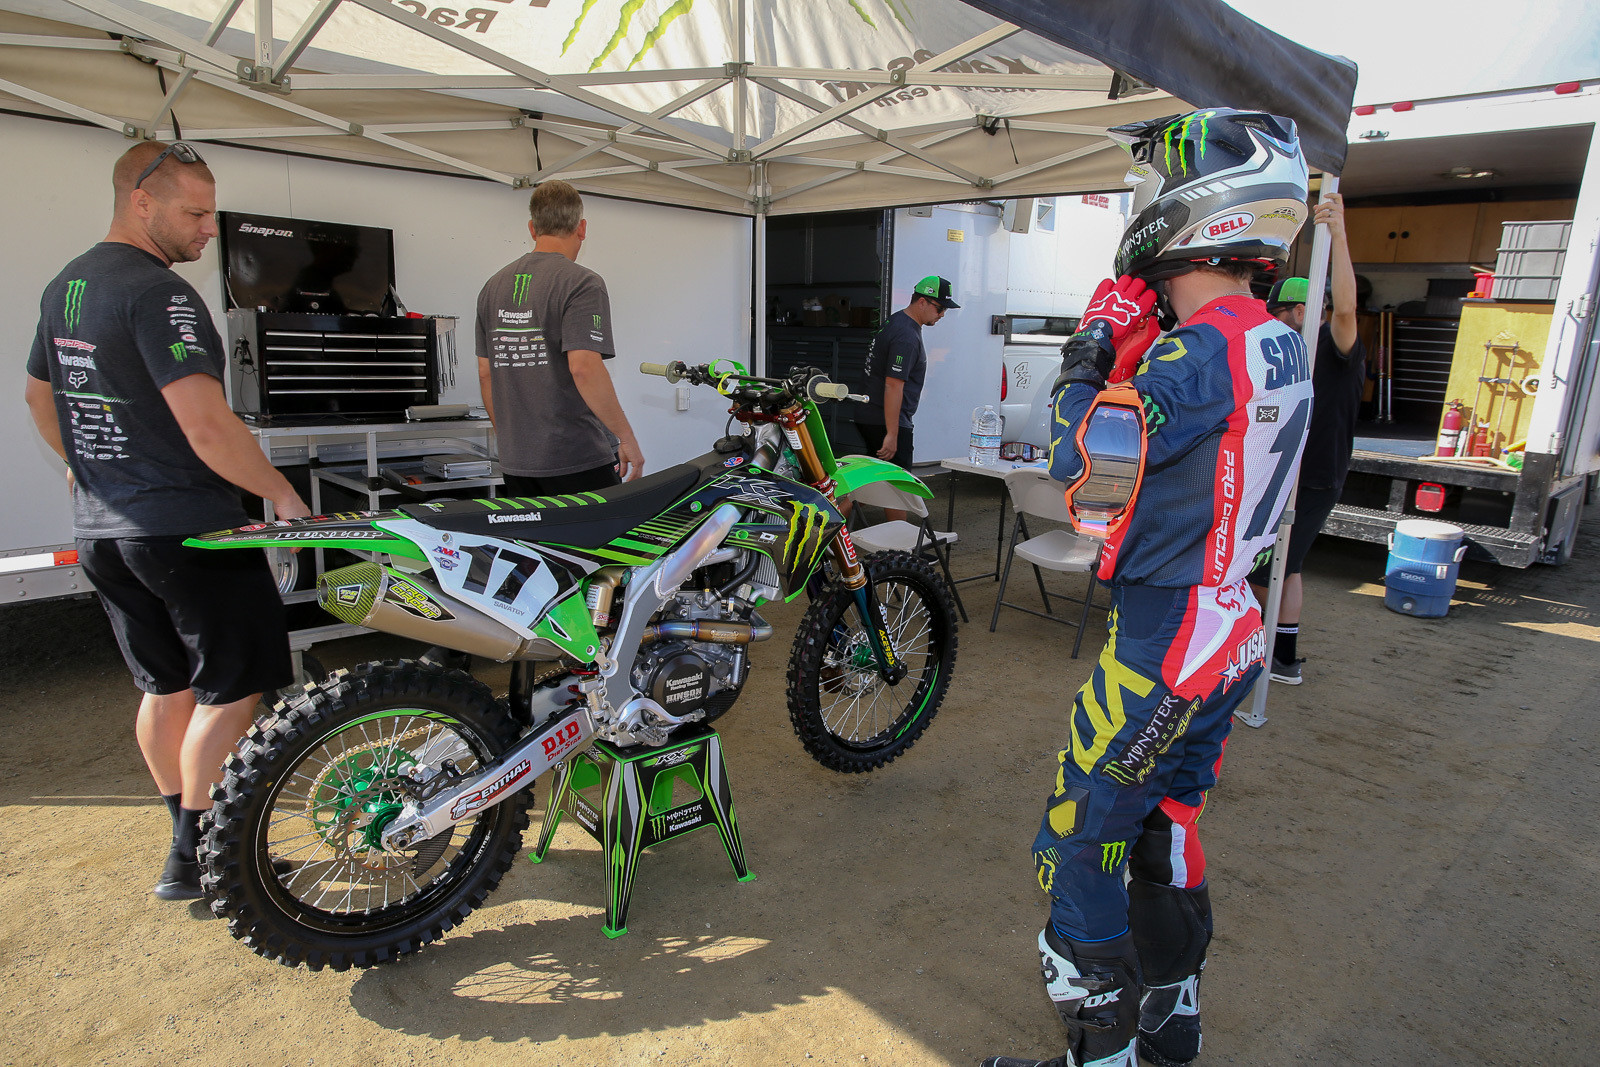 This was the first time we'd seen the '19 KX450F in full race trim.